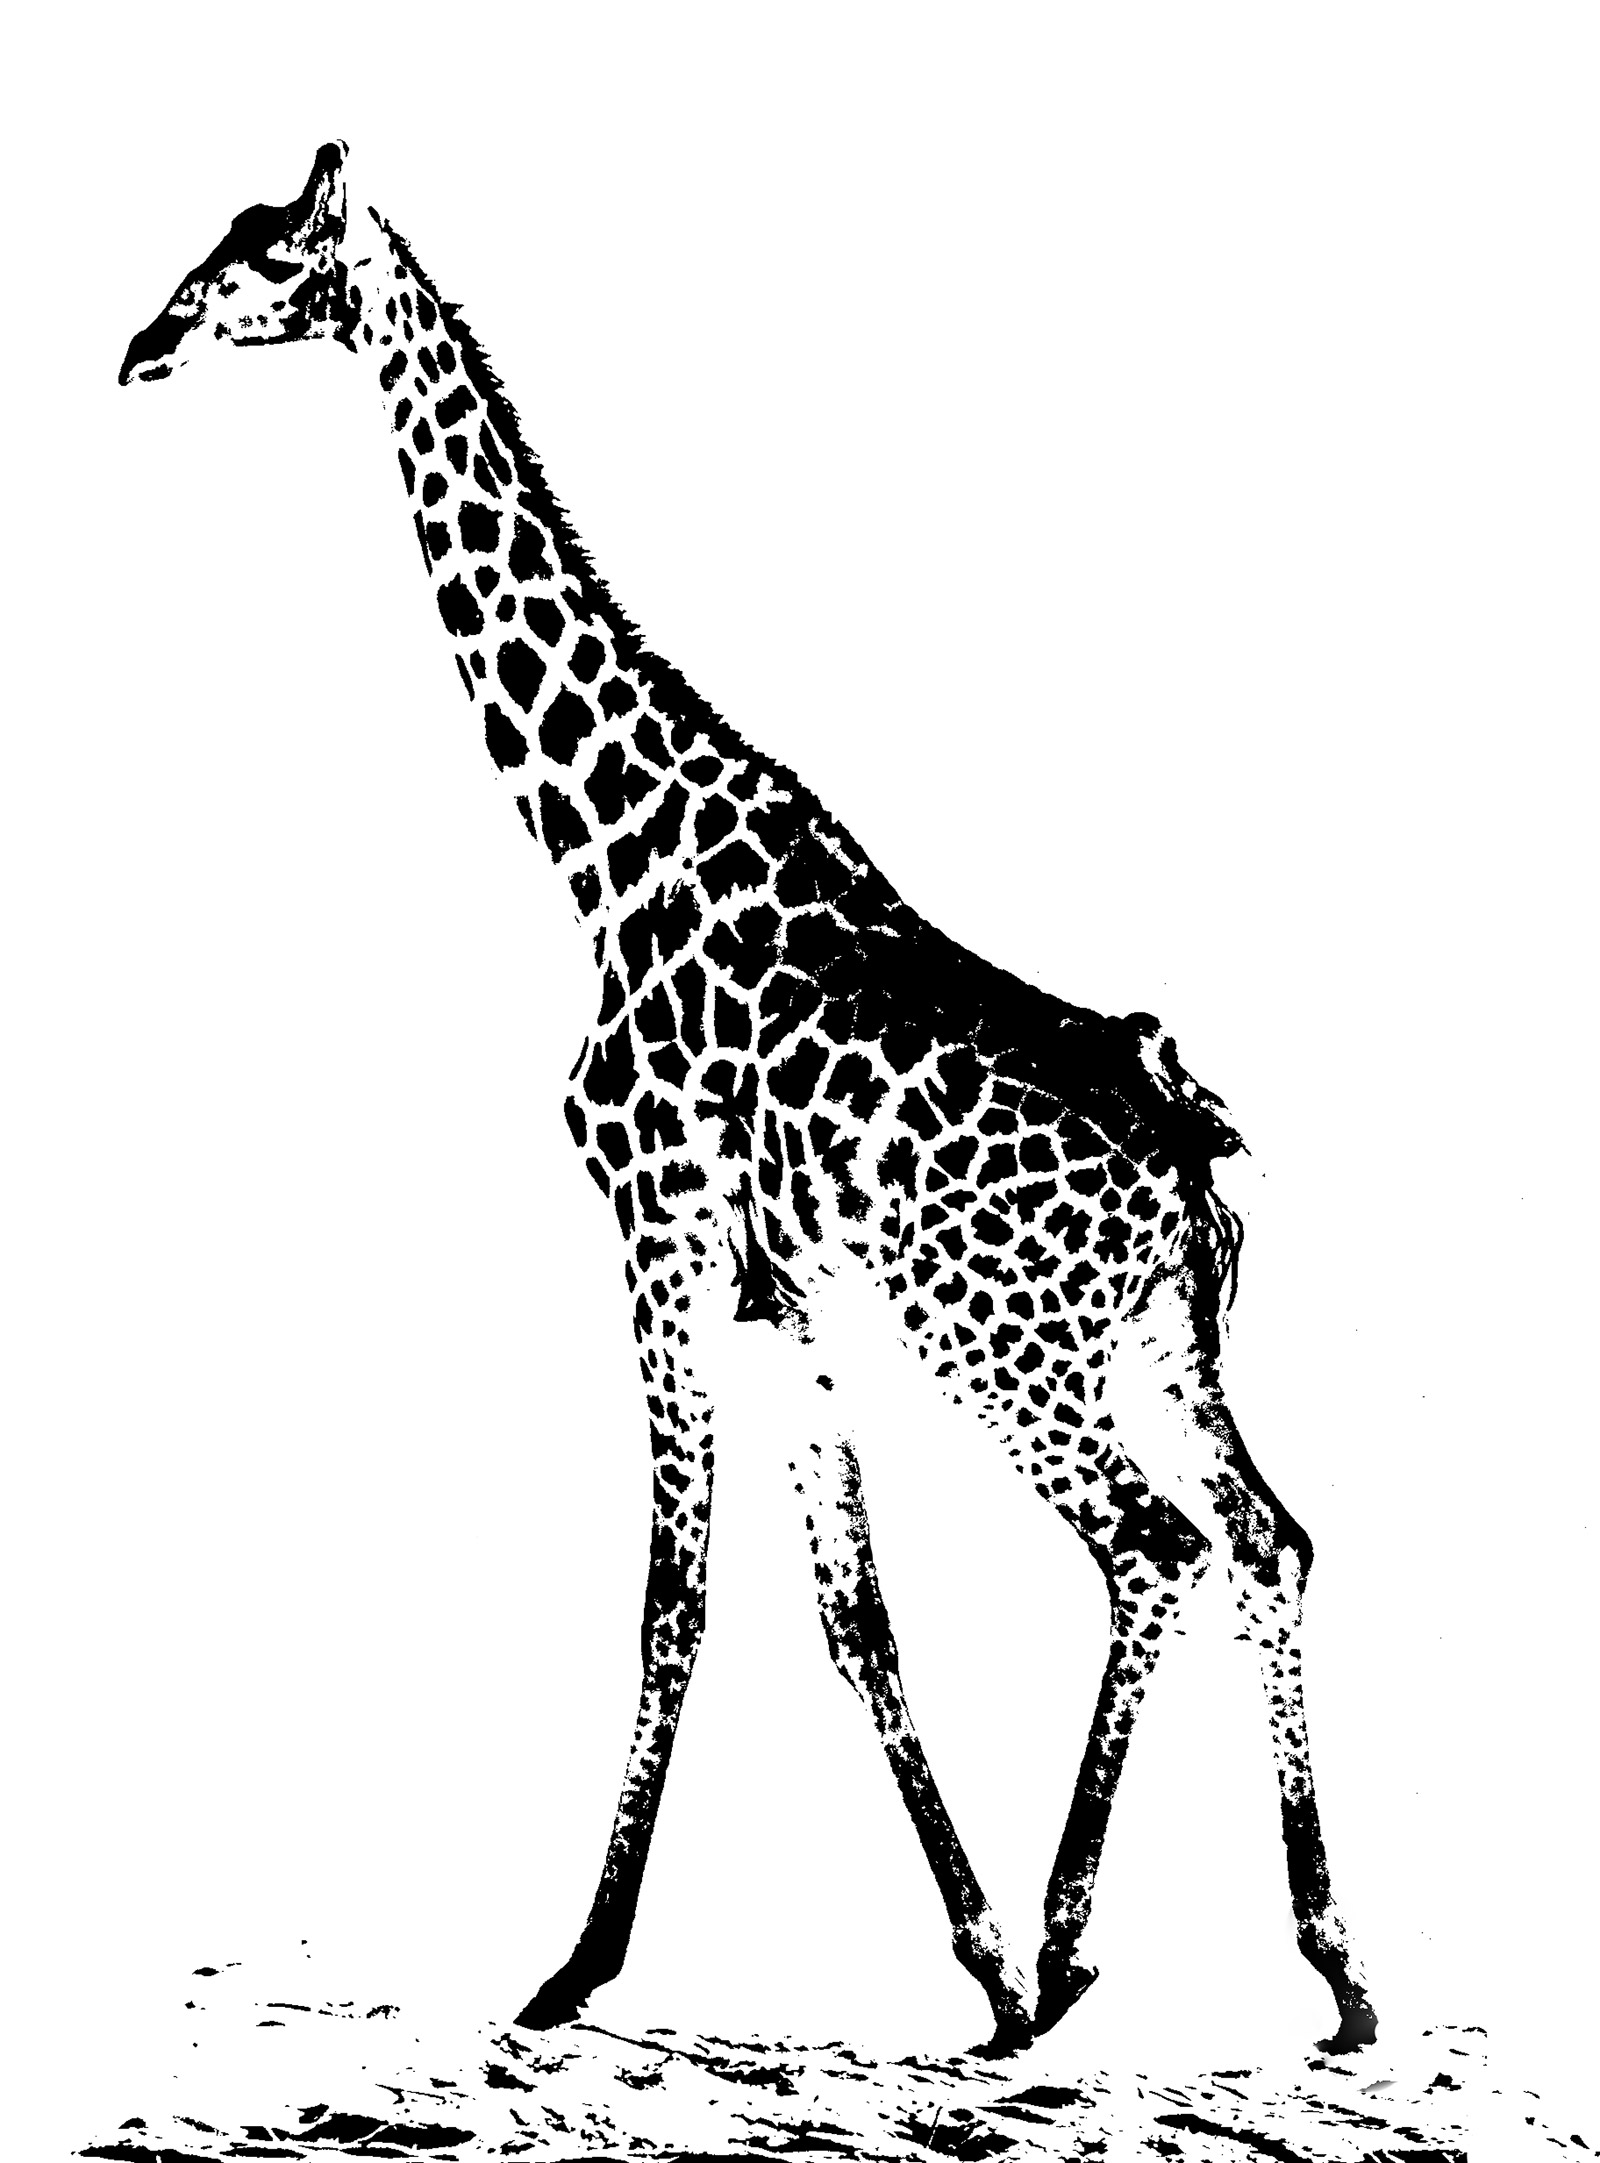 giraffe etching, Chobe, Botswana, Africa, canter, lone, spooked, stylised, different, photo